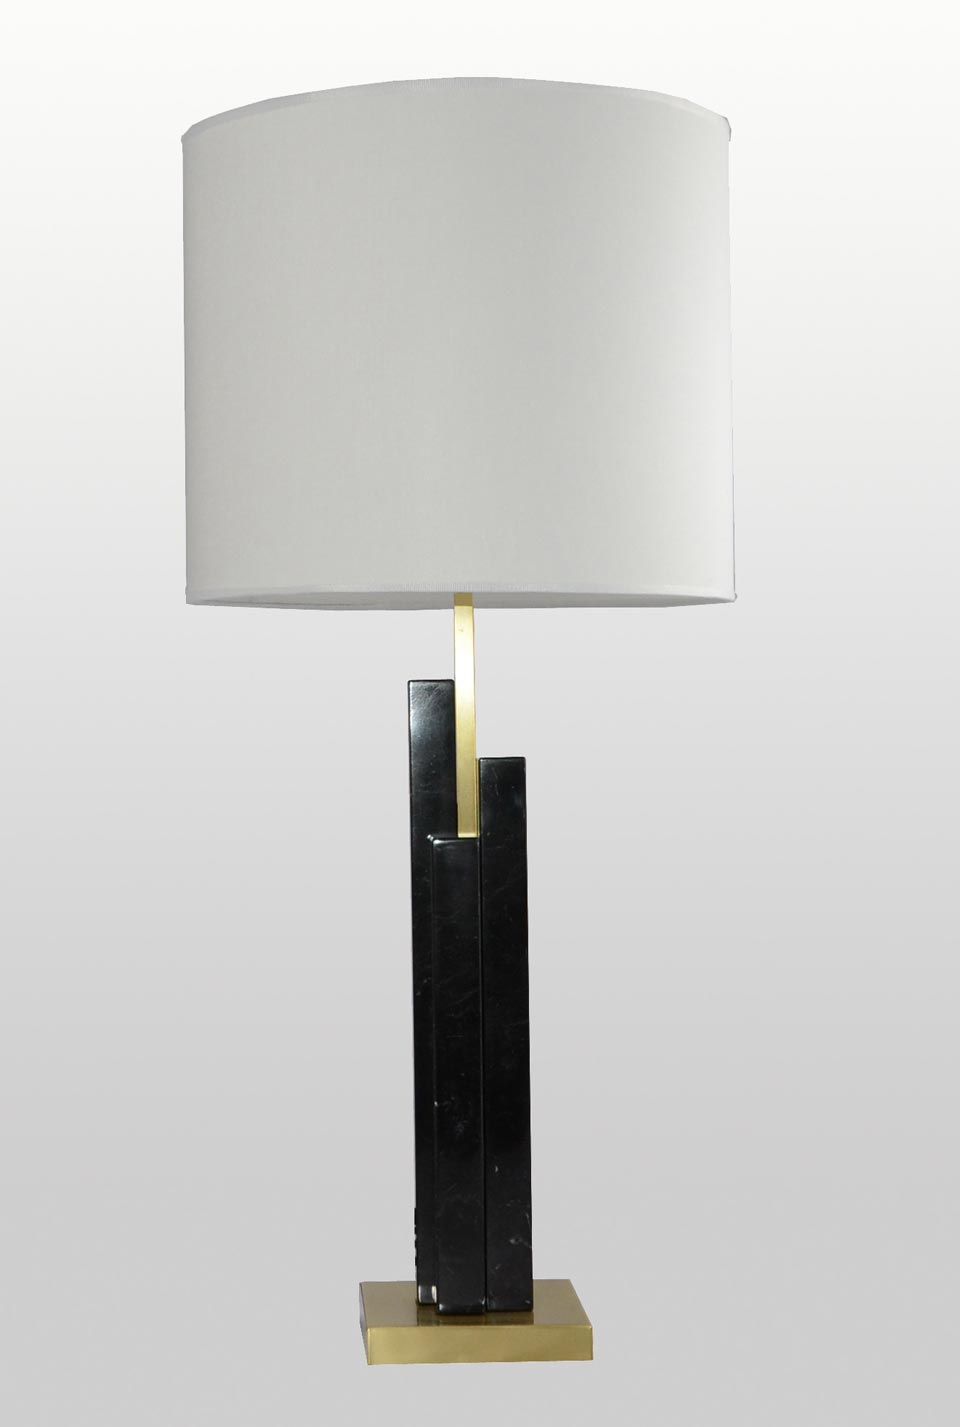 Lampe de table en marbre noir Skyline. Matlight.